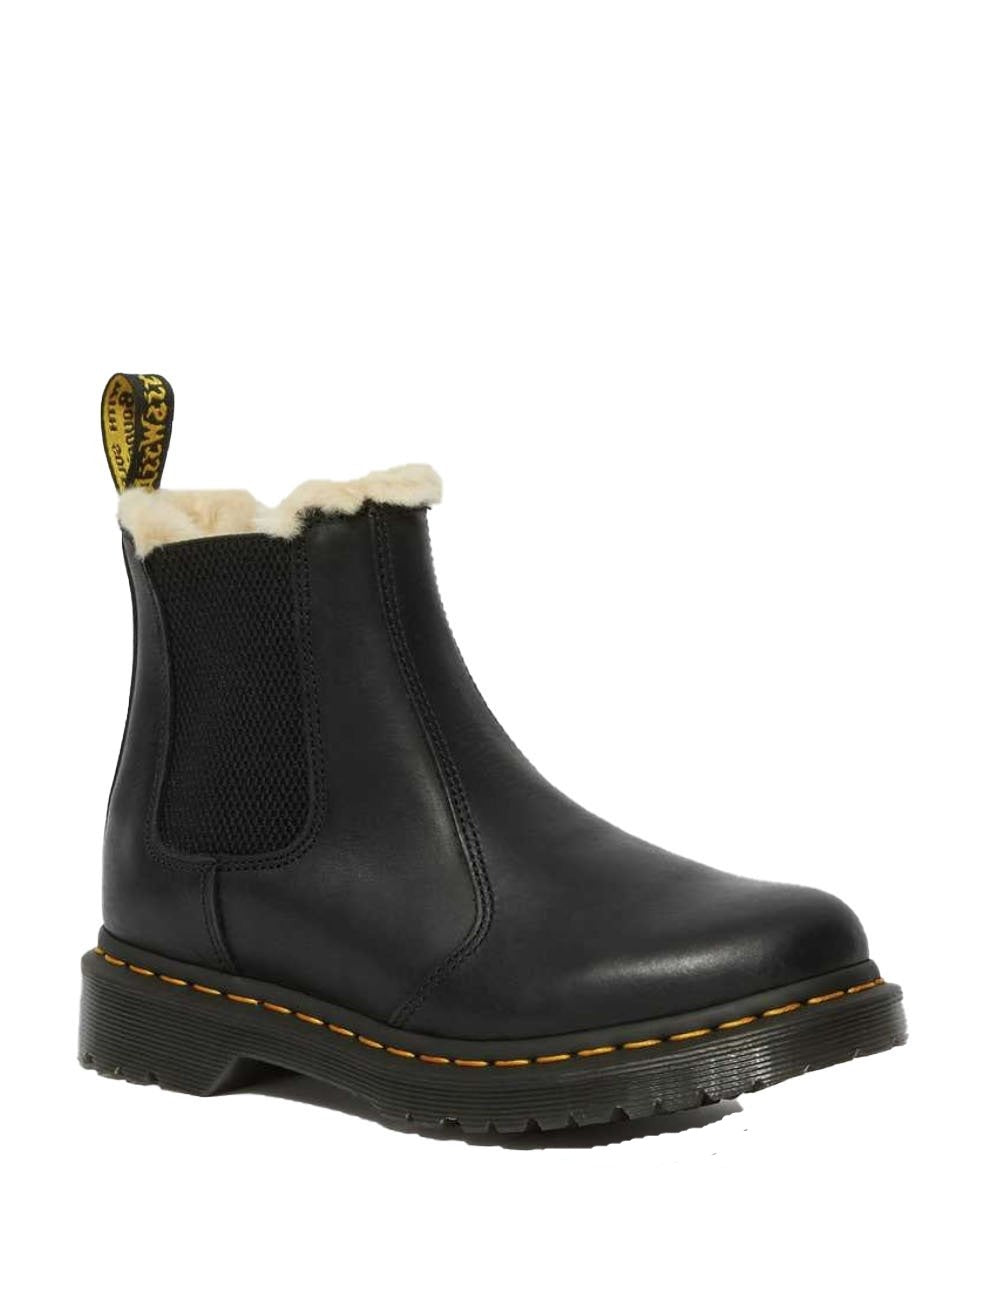 Dr. Martens 2976 Leonore Chelsea Boot in Black